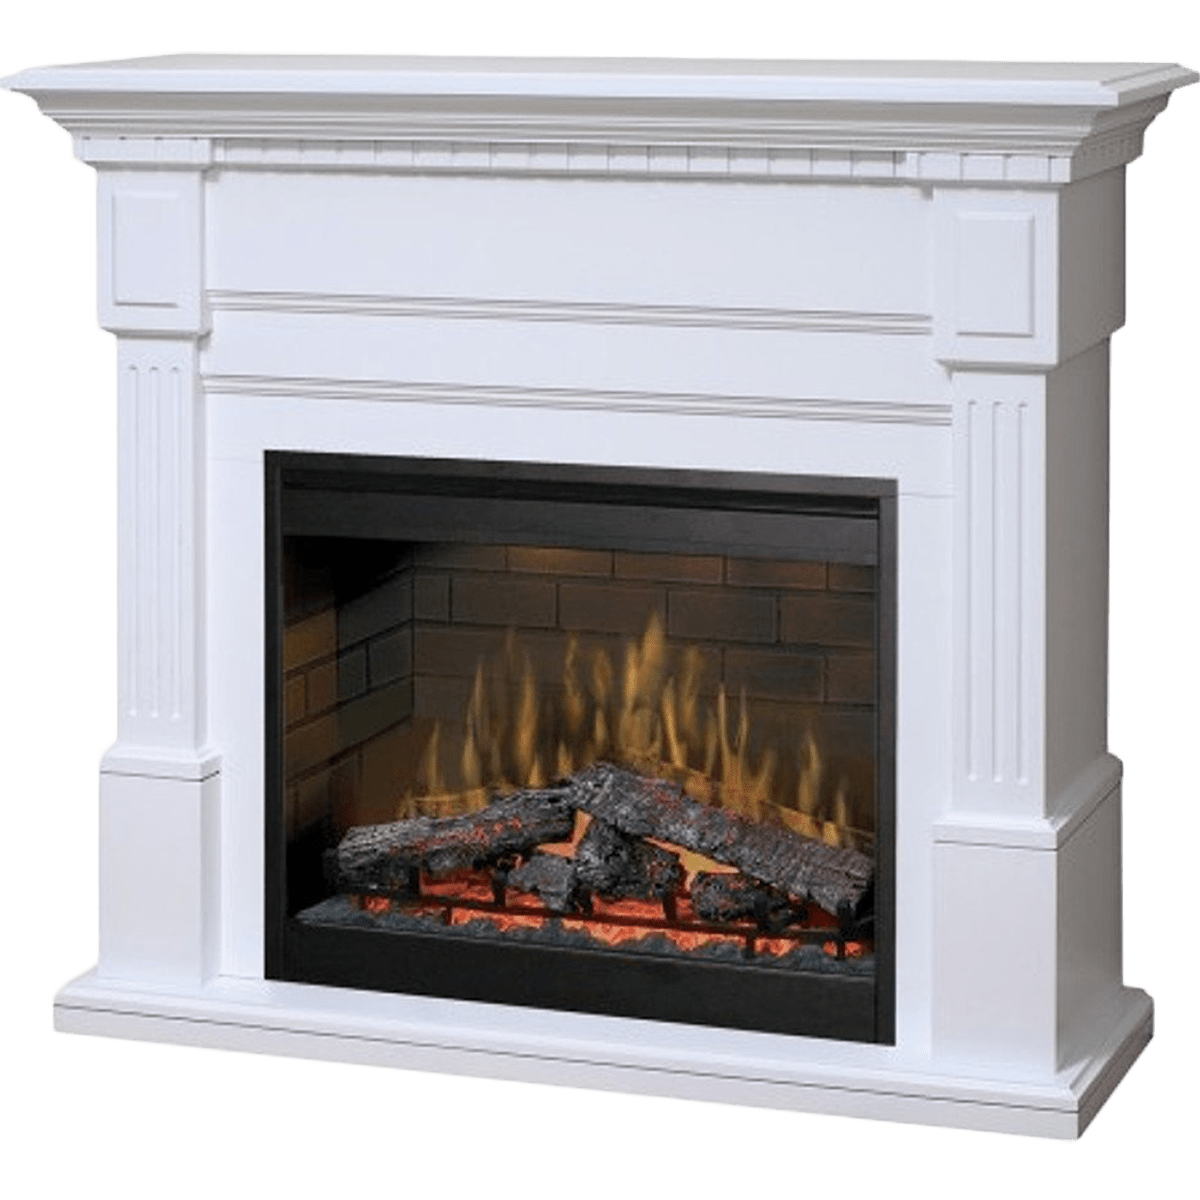 Grab your favorite blanket and cozy up beside the Dimplex Essex Electric Fireplace. Get free shipping and 30-day returns on the Dimplex Essex Fireplace at Sylvane.